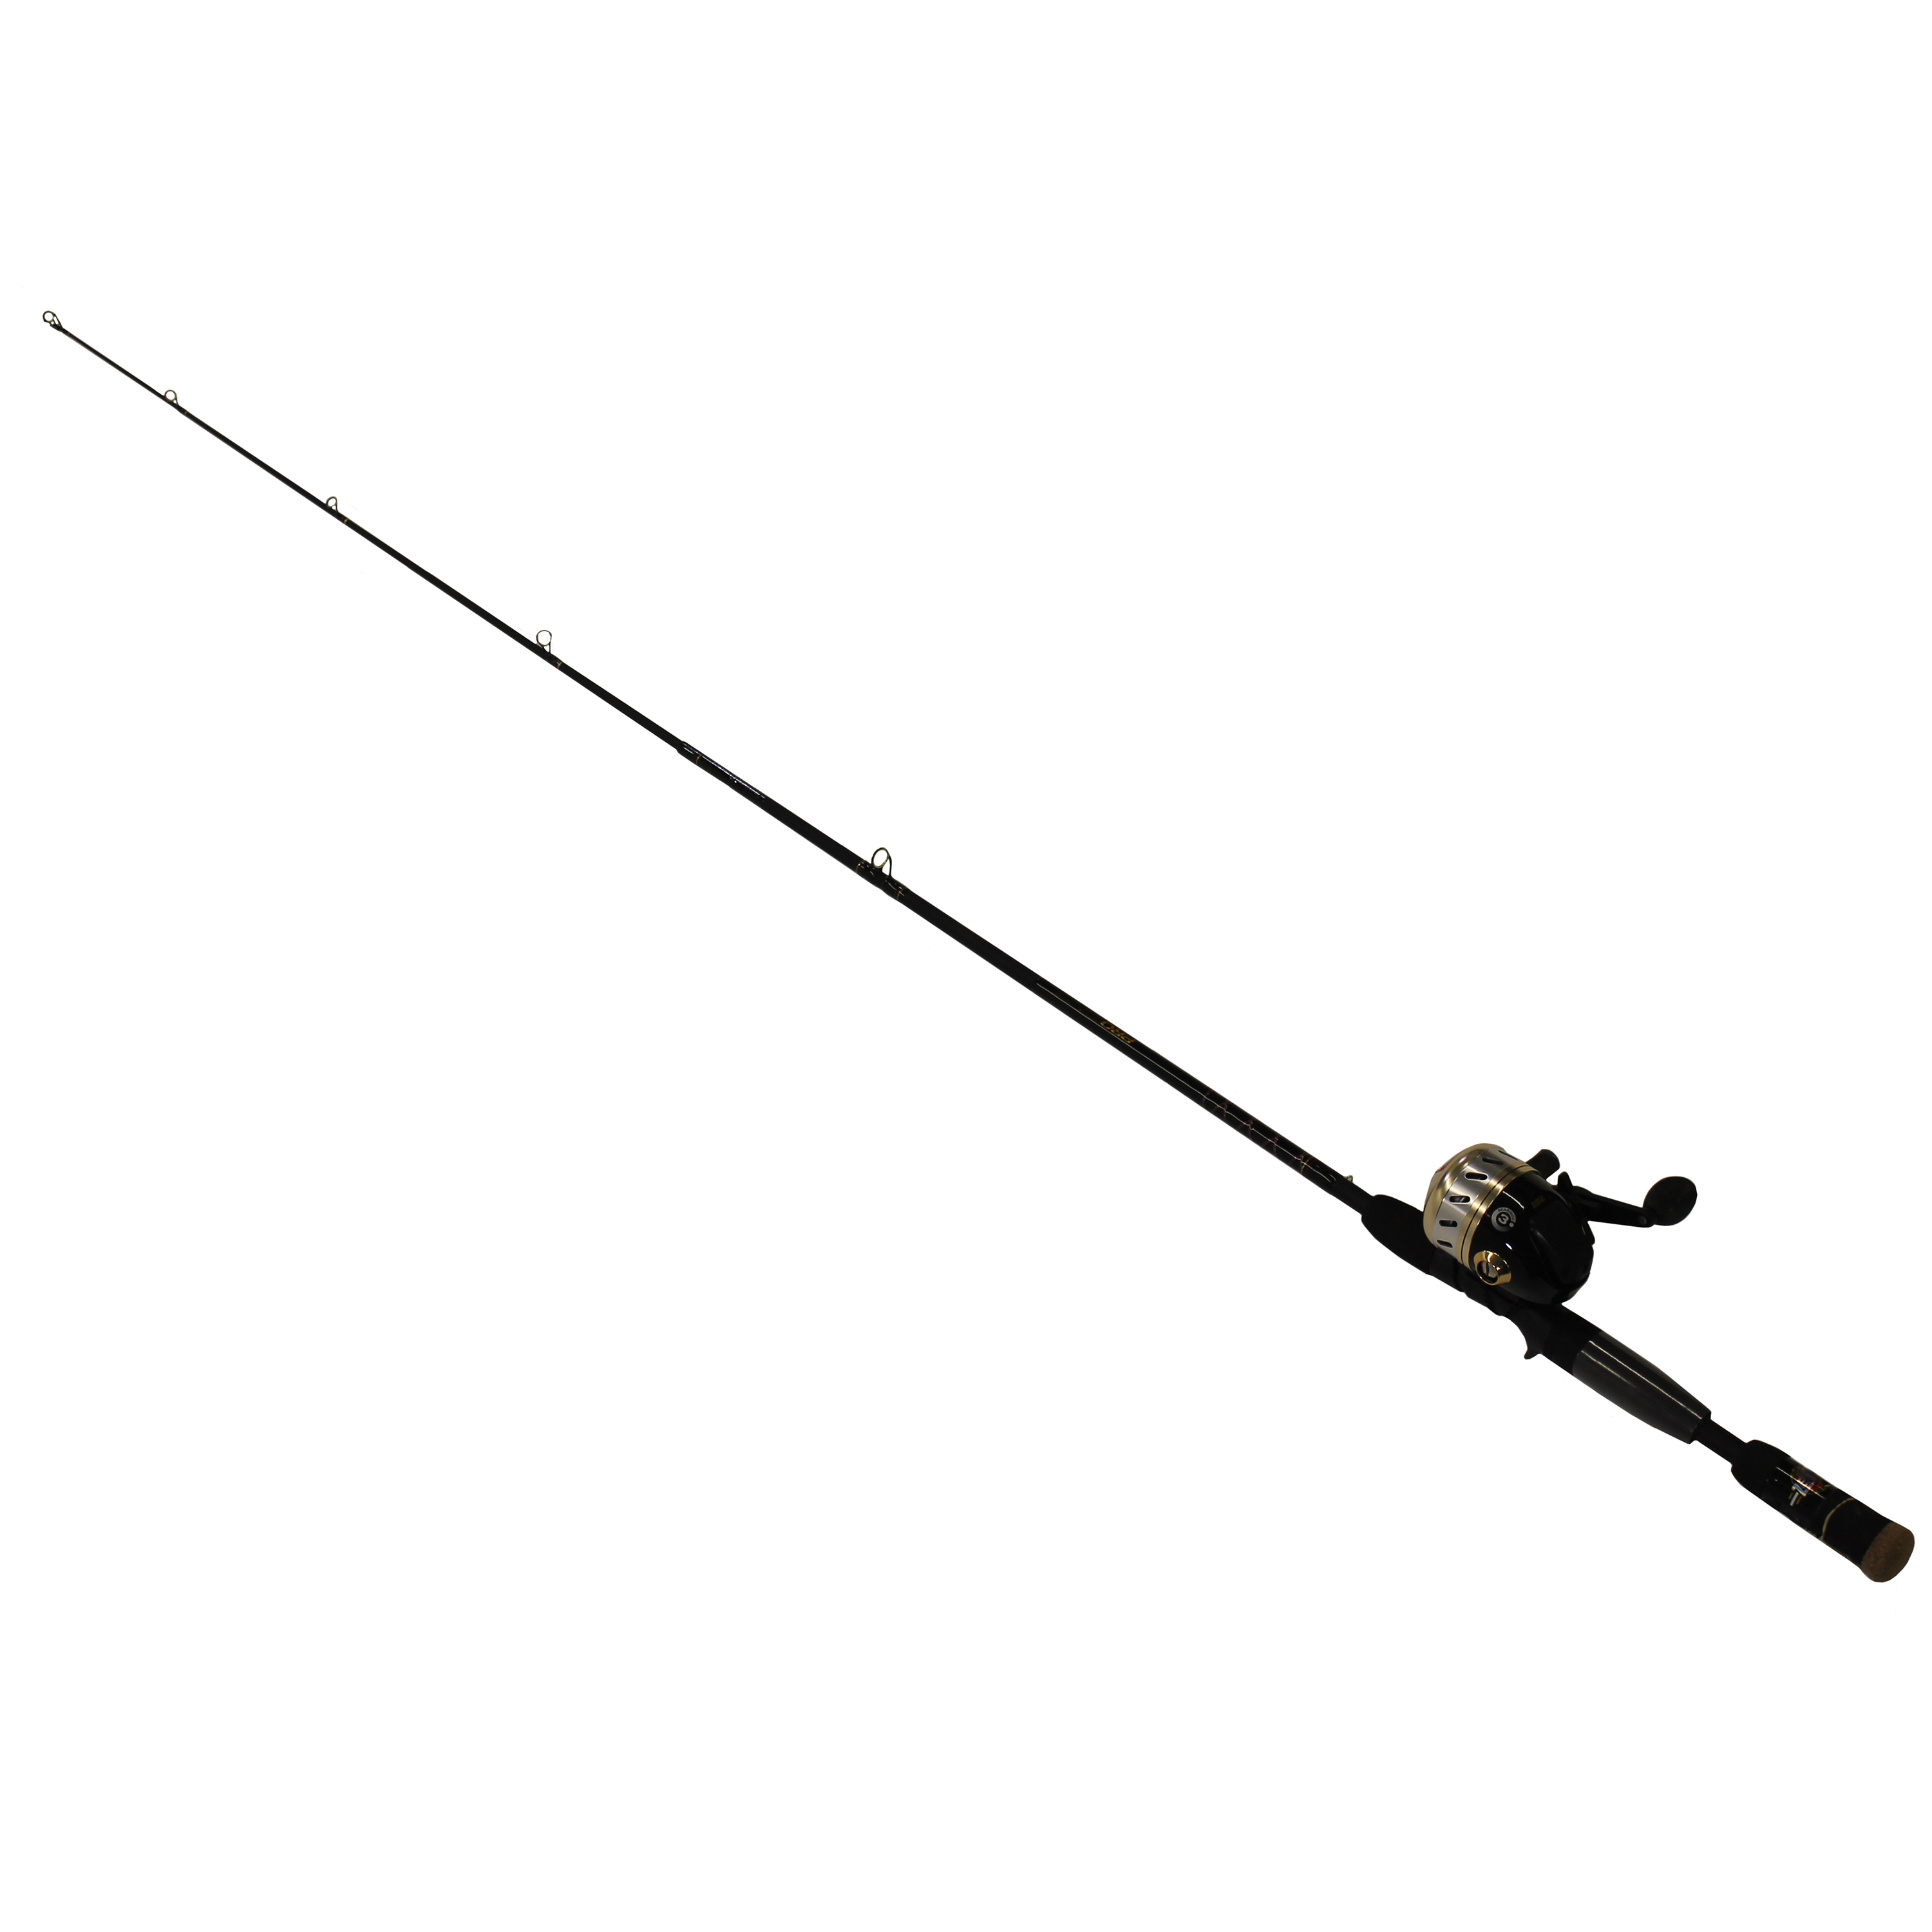 Best Spincast Combo 2020 Zebco Prostaff 2020/602m Spincast Combo PS2020C.08.NS3 | $1.04 Off